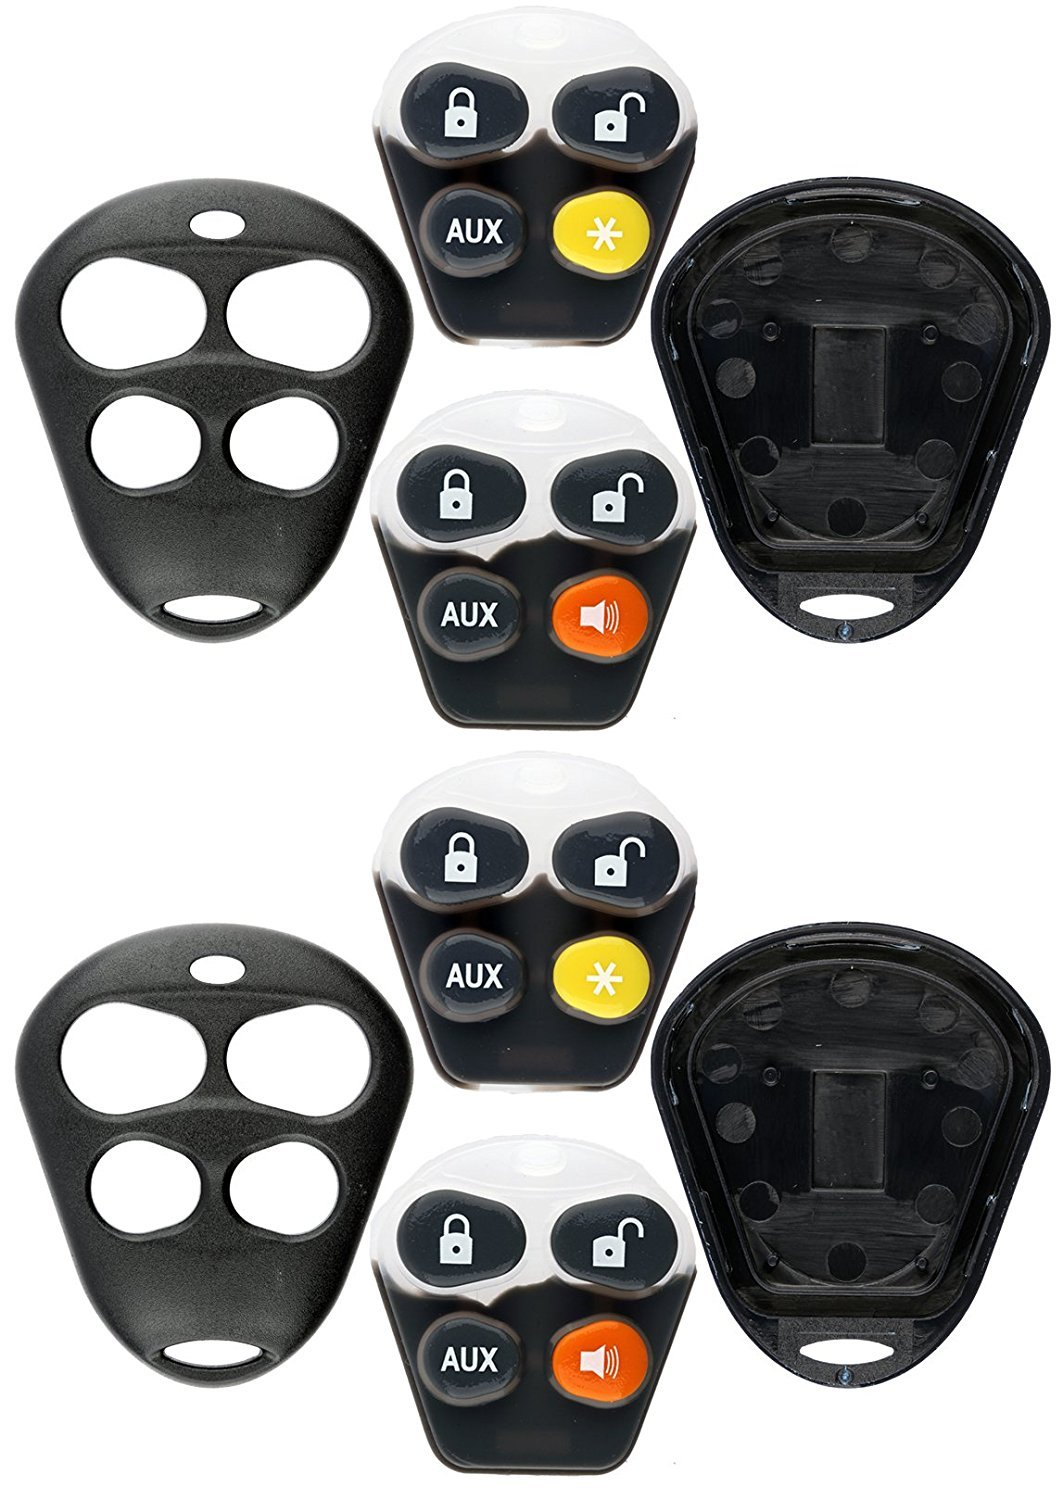 Pack of 2 KeylessOption Keyless Entry Remote Control Starter Car Key Fob Case Shell Outer Cover Button Pads For Viper Automate Alarms